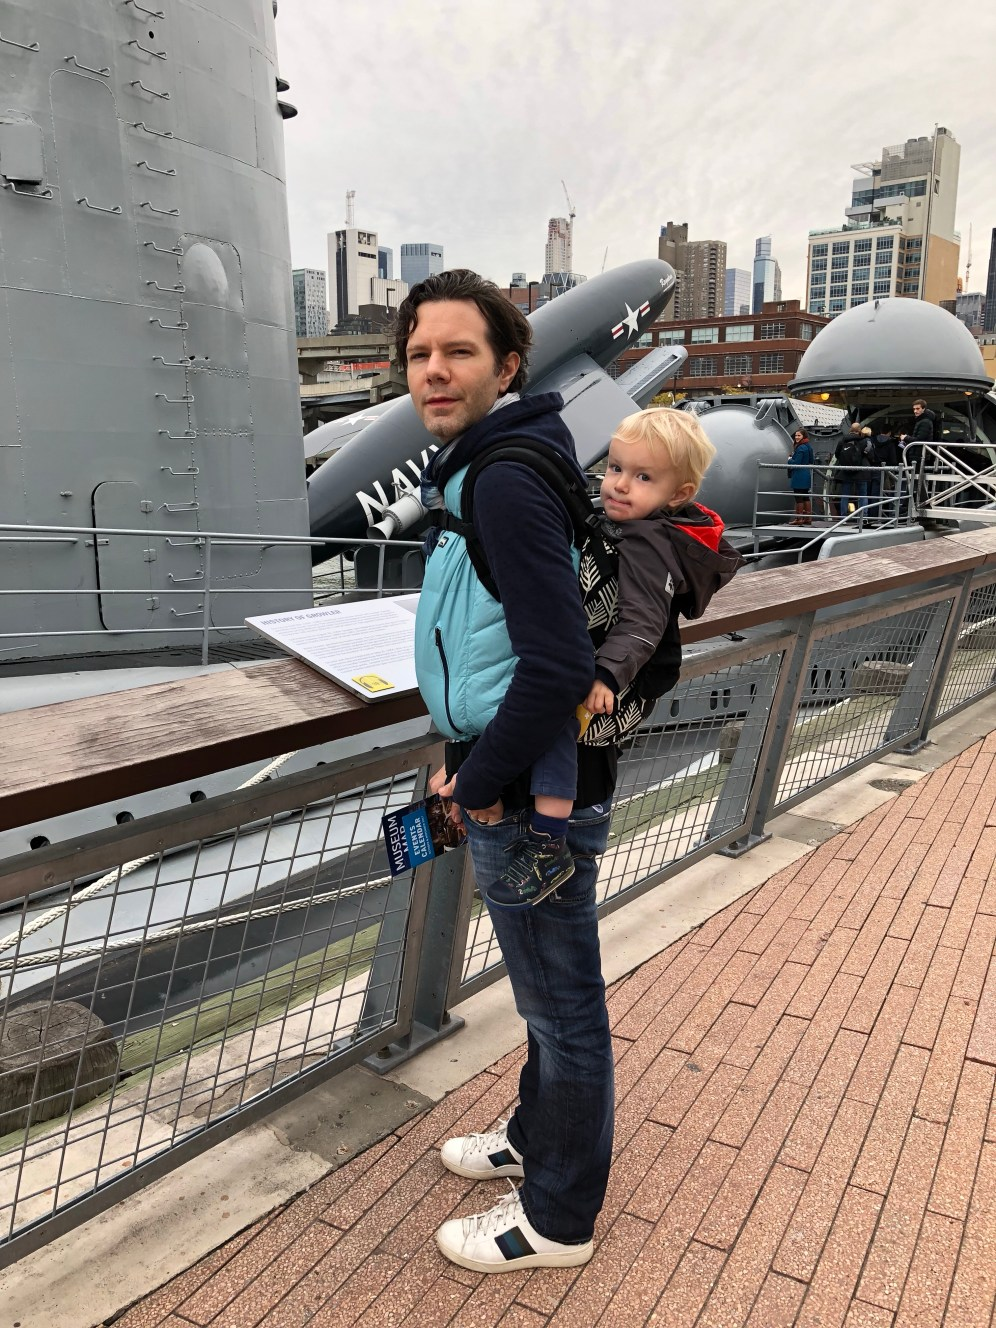 On a City Trip with a Toddler, 10 Tips from mom – Little T